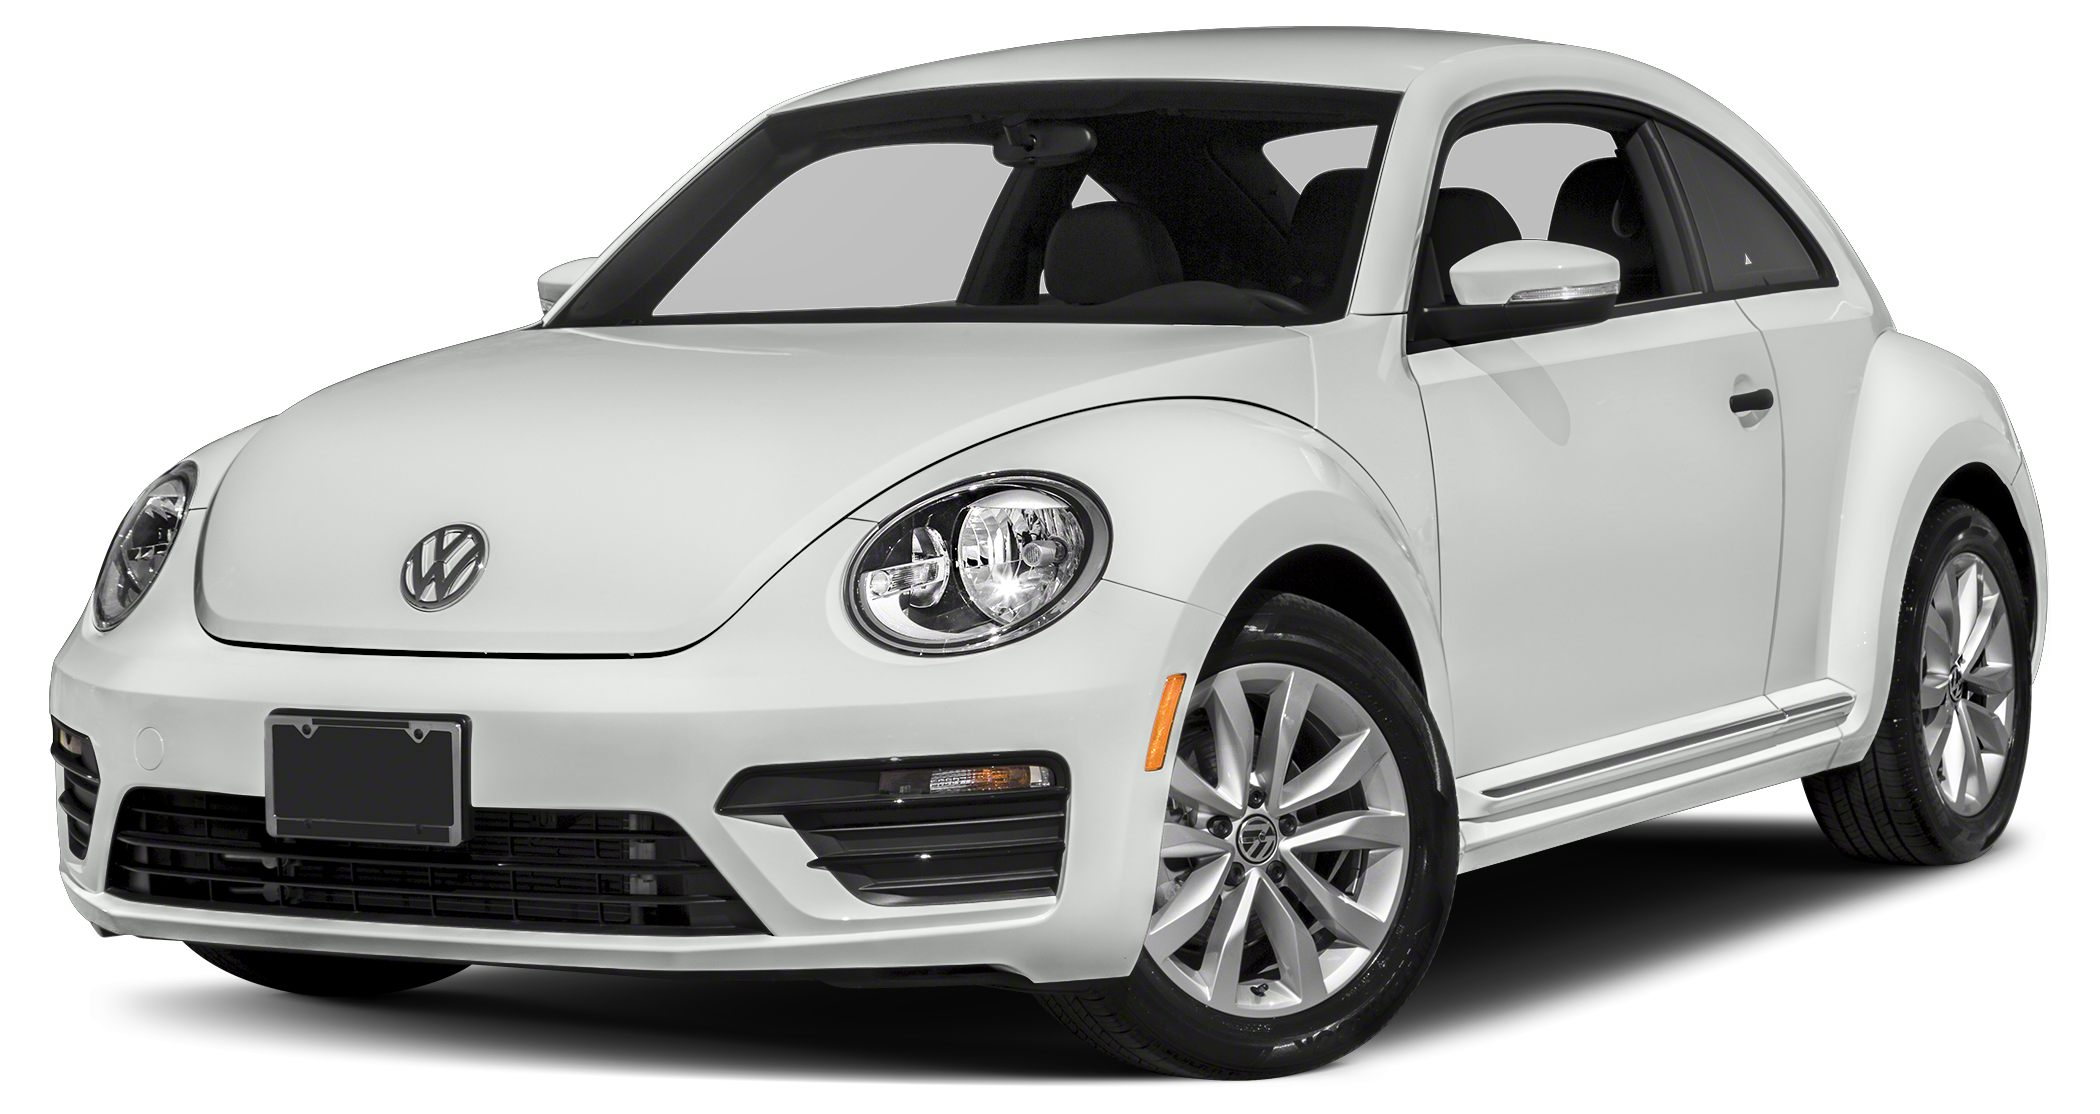 2017 Volkswagen Beetle 18T Classic Recent Arrival3324 HighwayCity MPG Miles 4011Color Pure